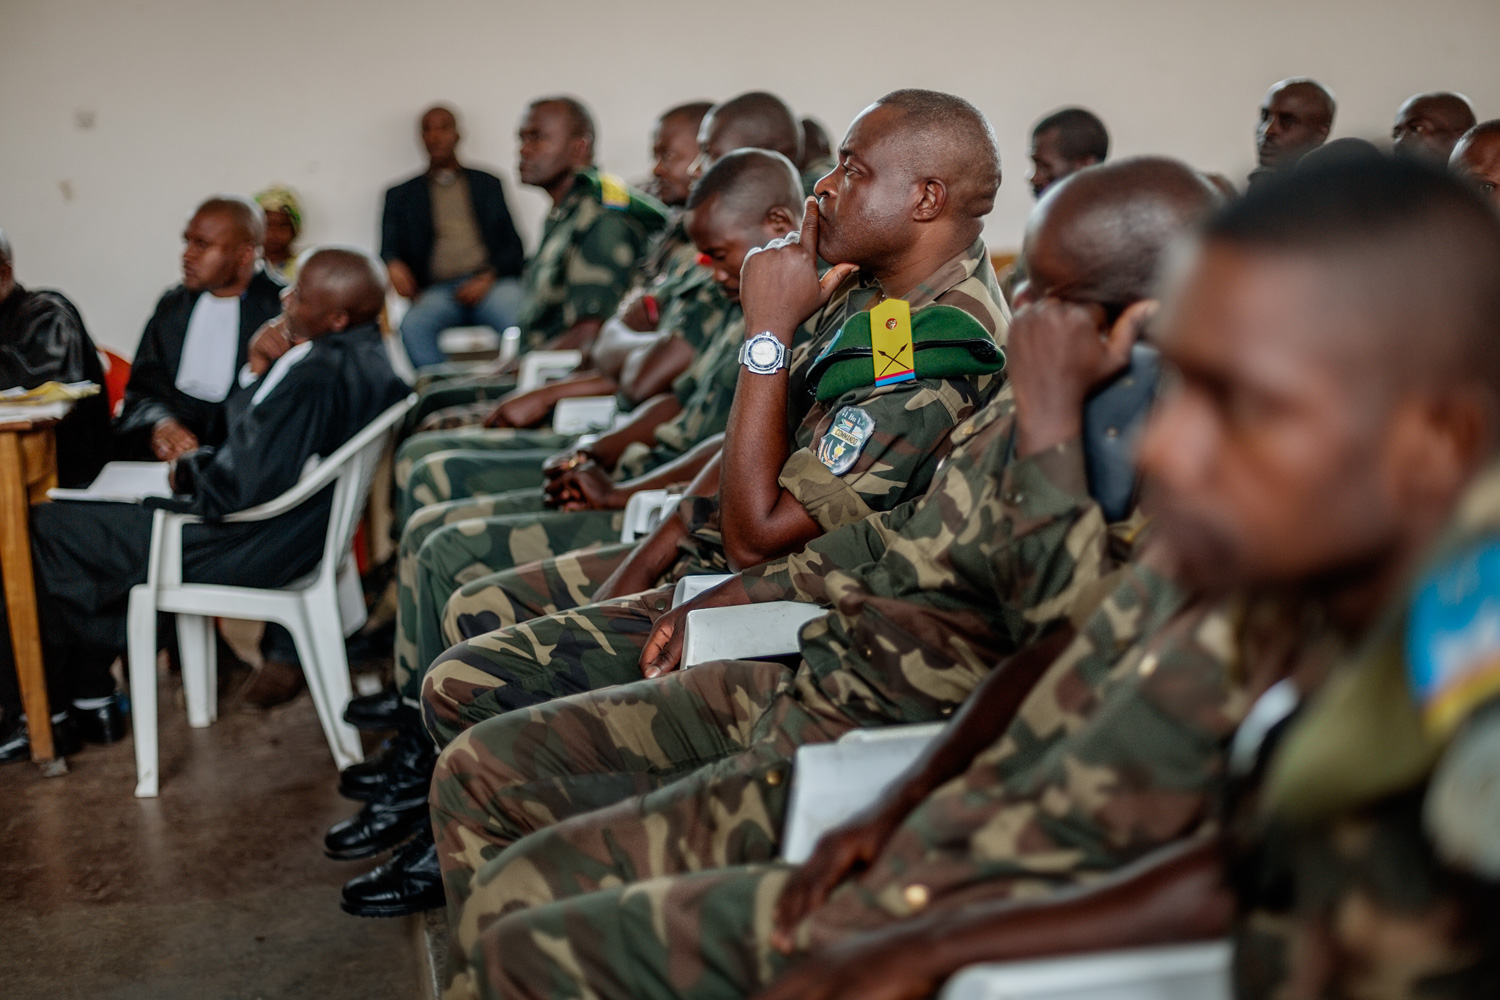 All but four of the 37 soldiers accused of rape sat in the trial room. The missing four were still on active duty in northern DRC. 25 of the accused were lower-ranked soldiers, while twelve were officers in charge of those soldiers' units. At a trial in nearby Mupoke in 2013, only one soldier stood accused of rape. The others fled before the trial took place.